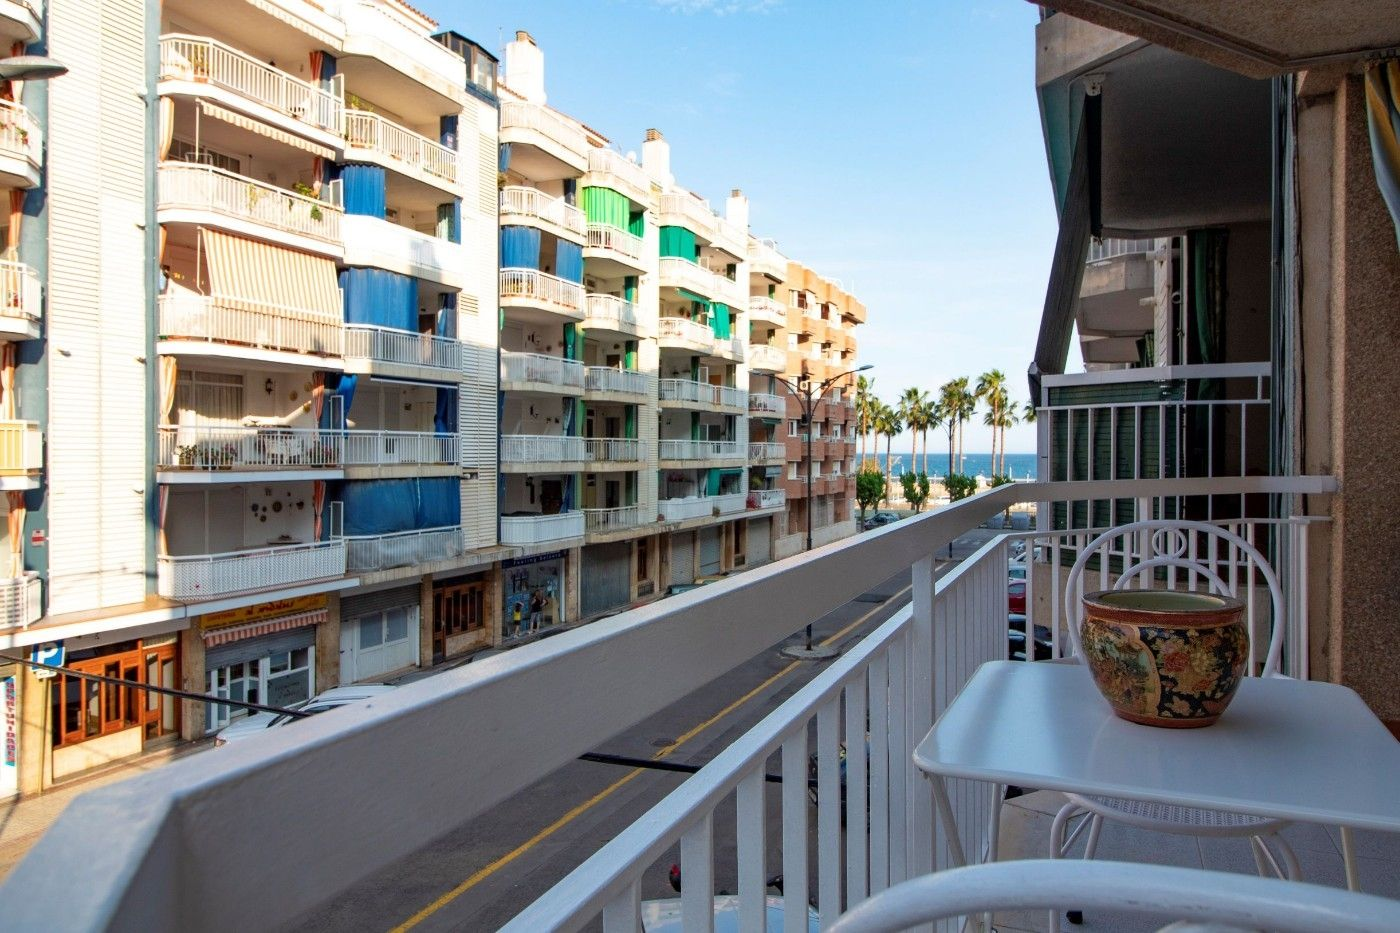 Rent Apartment in Calle doctor fleming, 10. Perfect for students